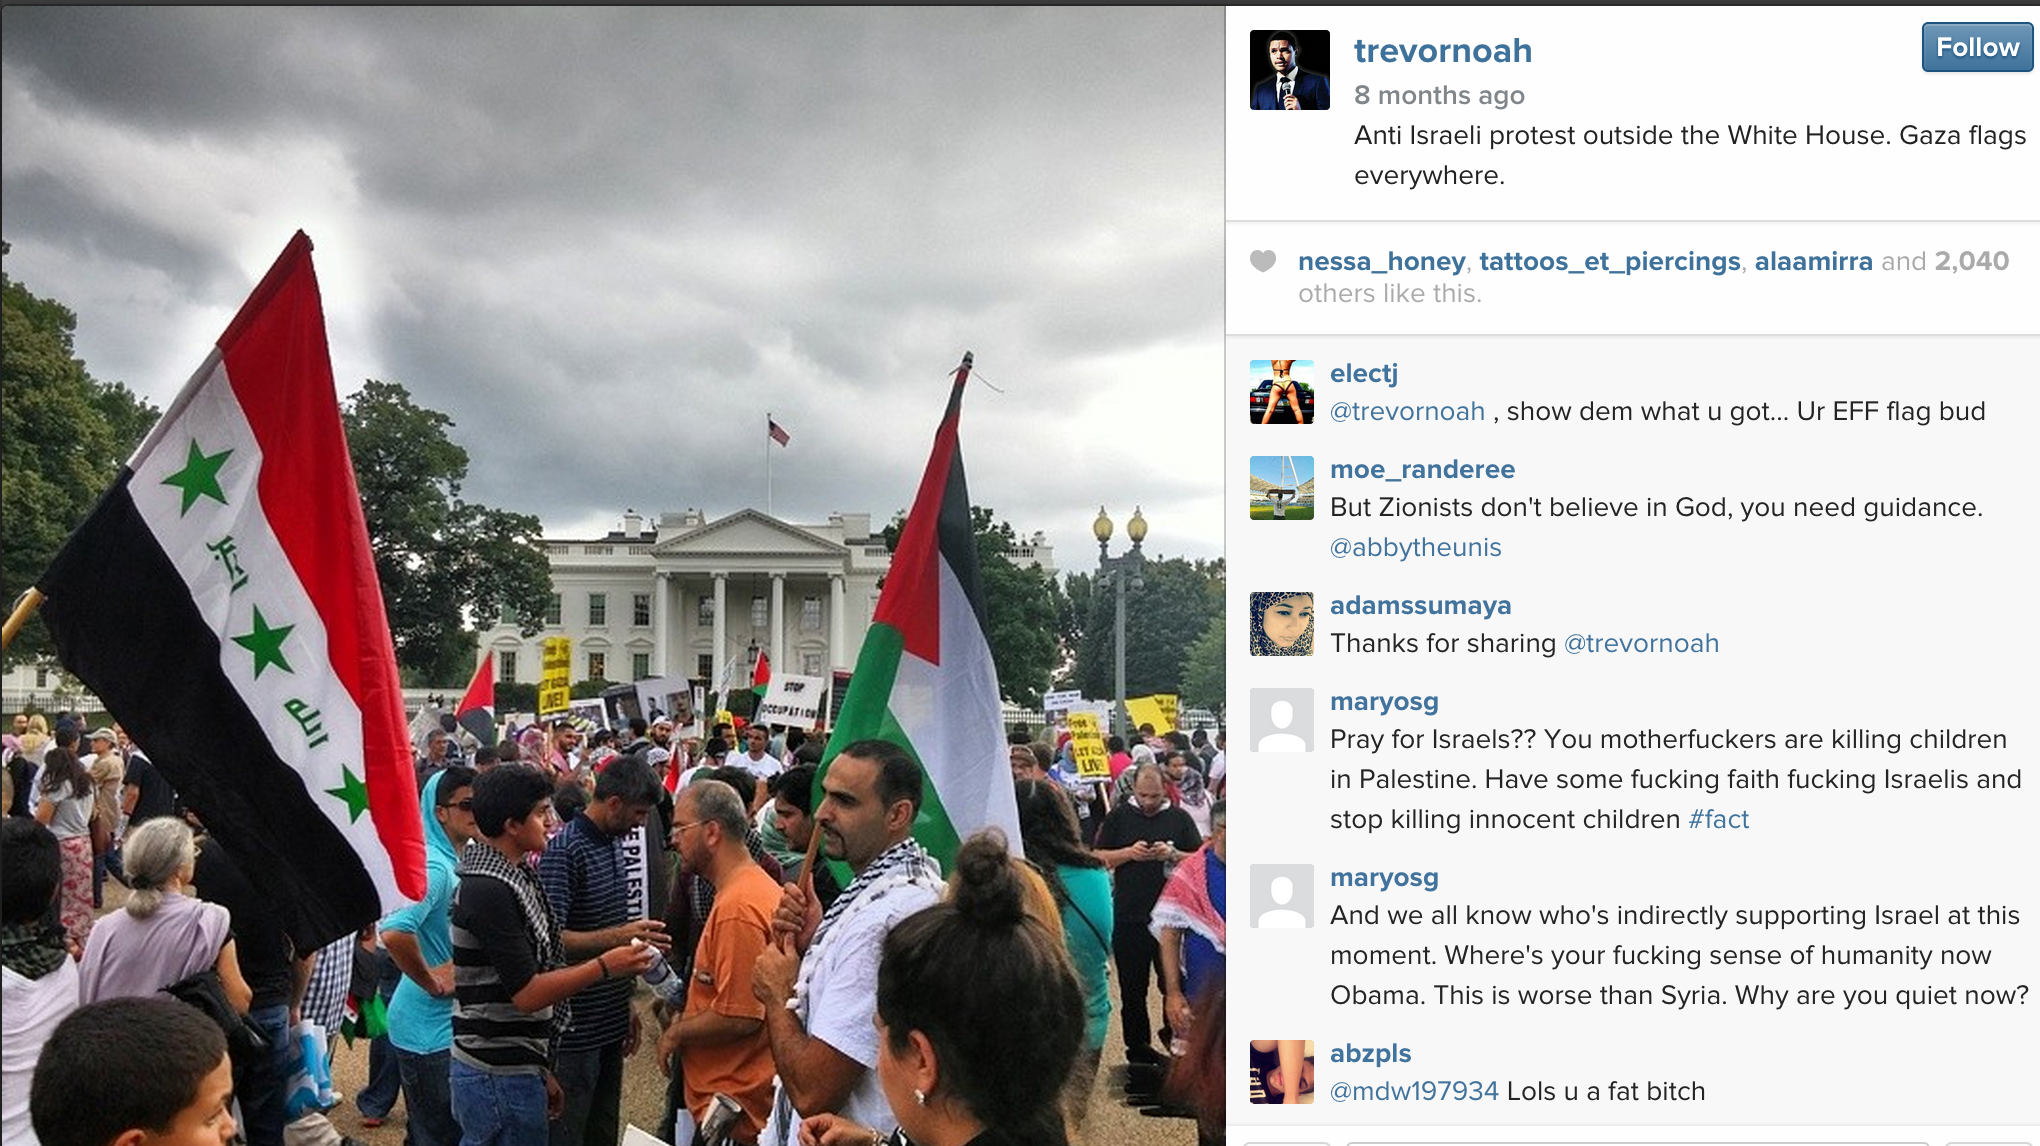 What Does Trevor Noah Think About Israel Jewish